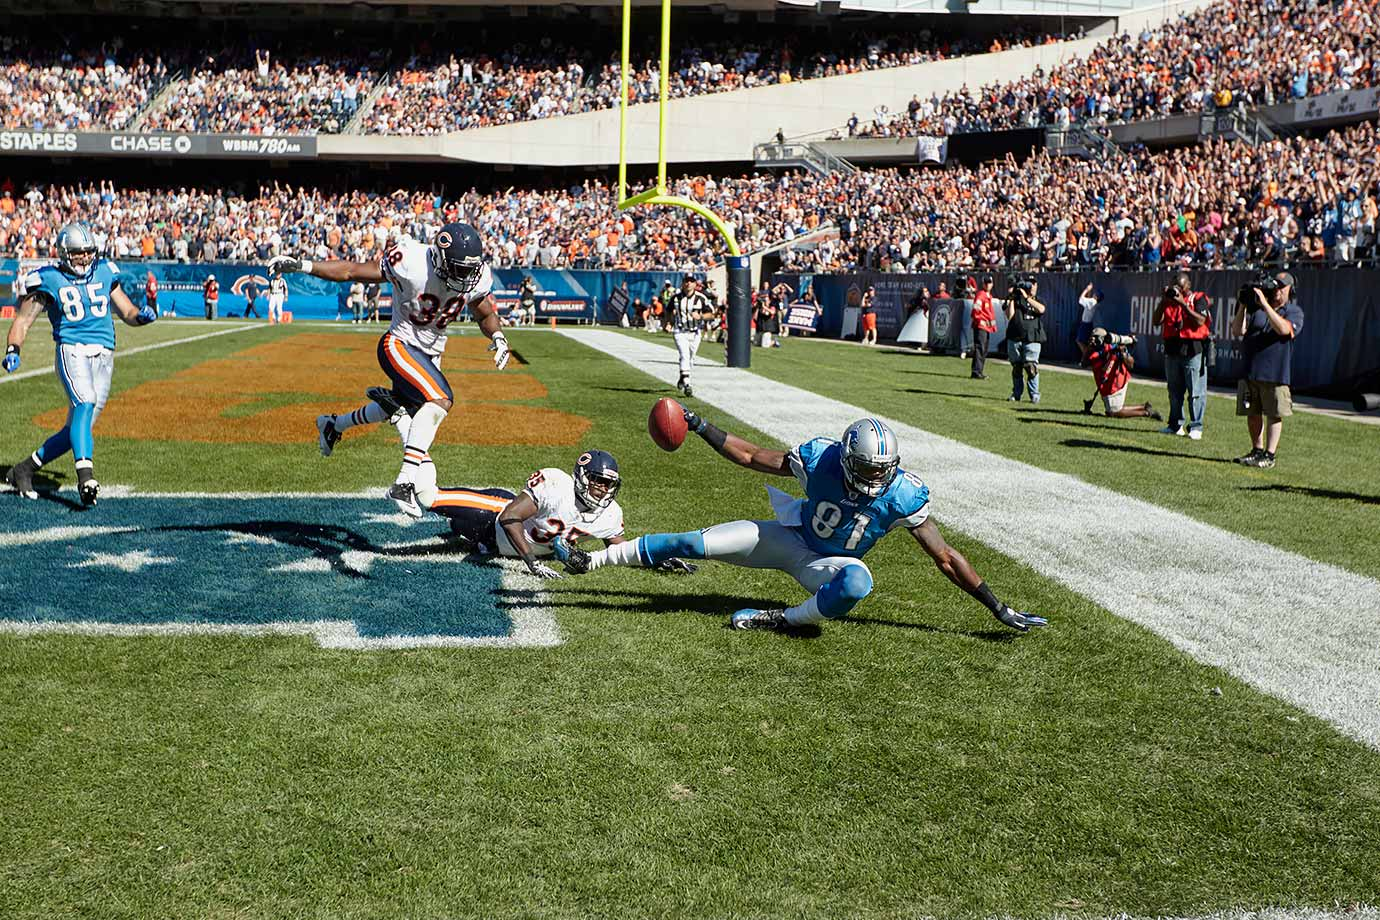 Sept. 12, 2010 — Detroit Lions vs. Chicago Bears